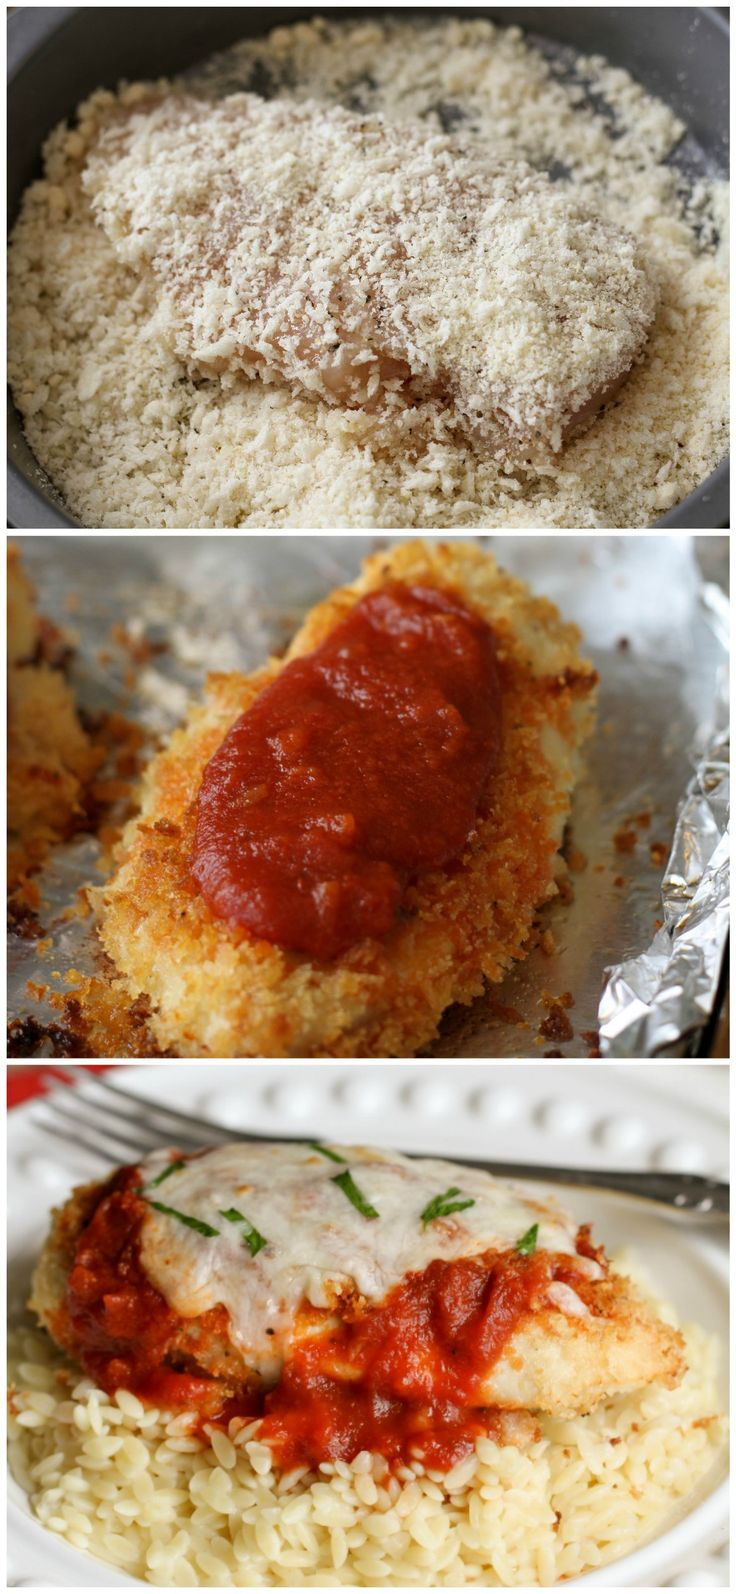 Baked chicken parmesan by @kristynm using @ragusauce Old World Style Traditional | That's what we call #Saucesome !